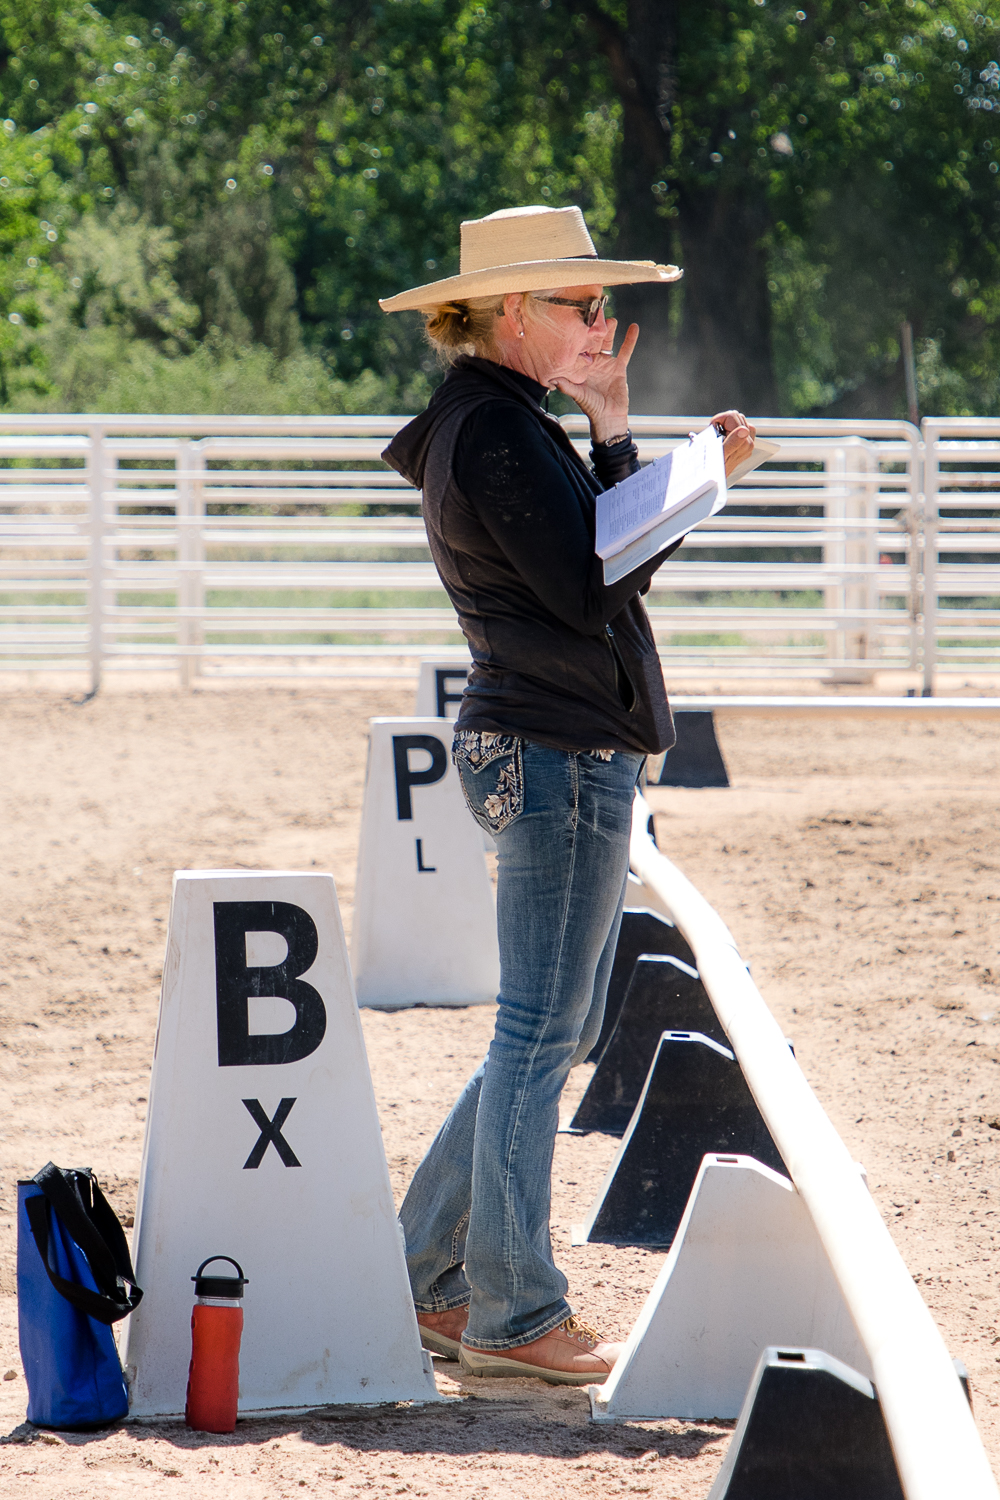 Sometimes, learning new dressage tests is a challenge for the mind. With AVDA, dressage test readers help riders not only with the tests but with the directions of the letters. And reading the tests for the riders also helps the reader learn those tests from the ground.